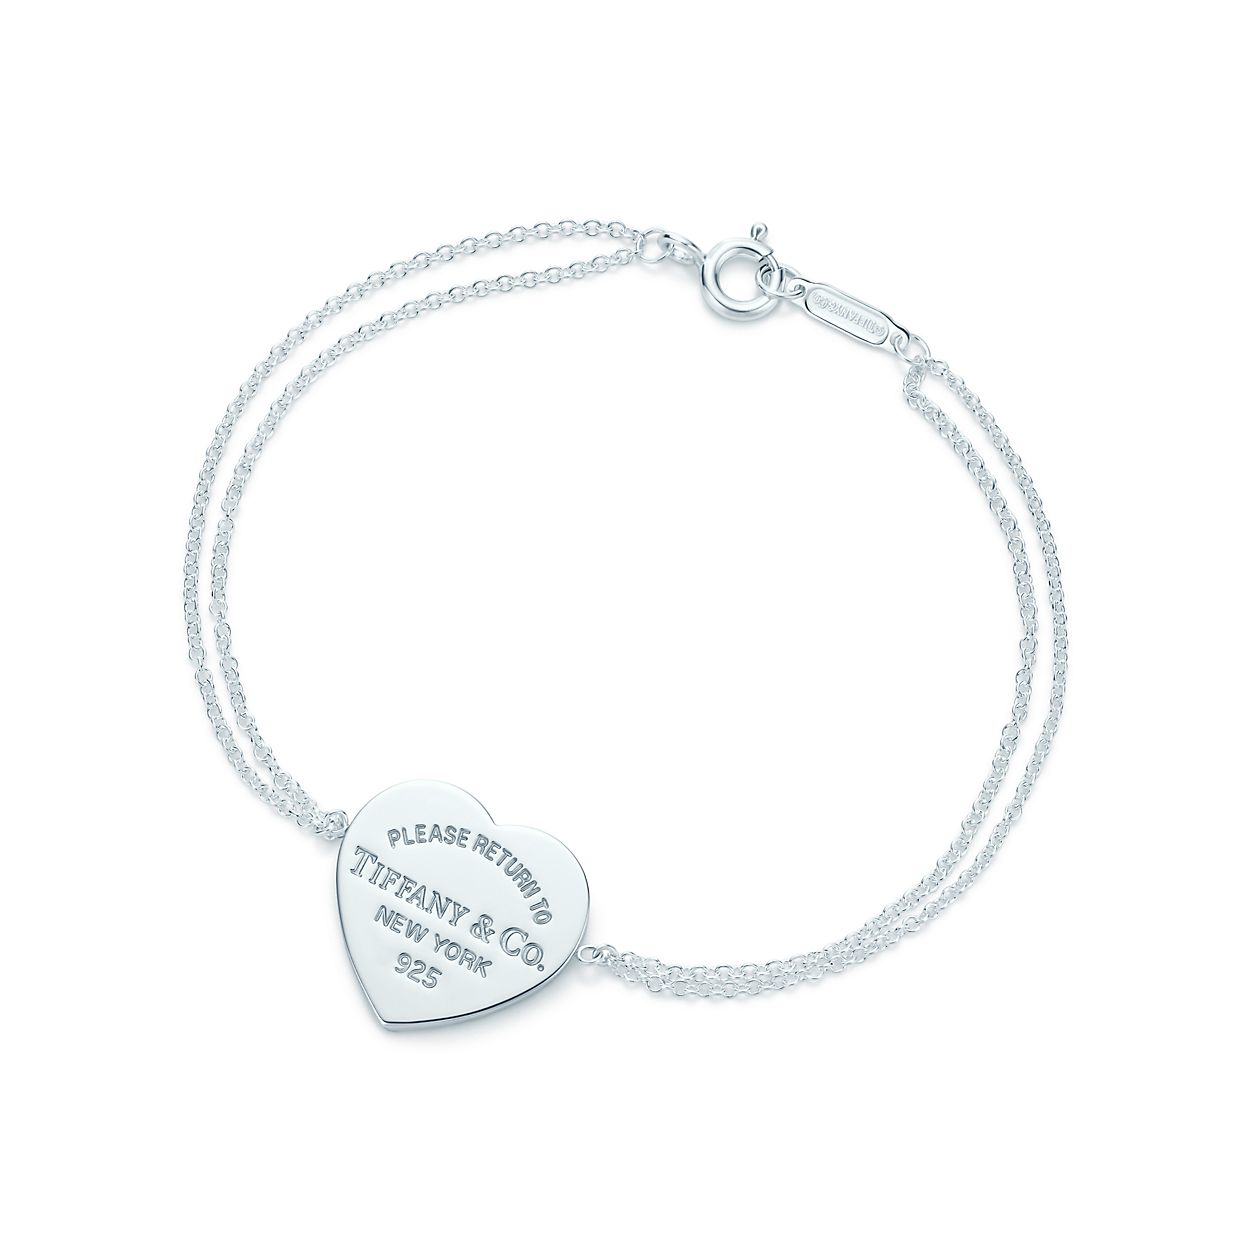 Return to Tiffany mini round tag in sterling silver on a bead bracelet - Size 6.5 in Tiffany & Co. QenIU2t8